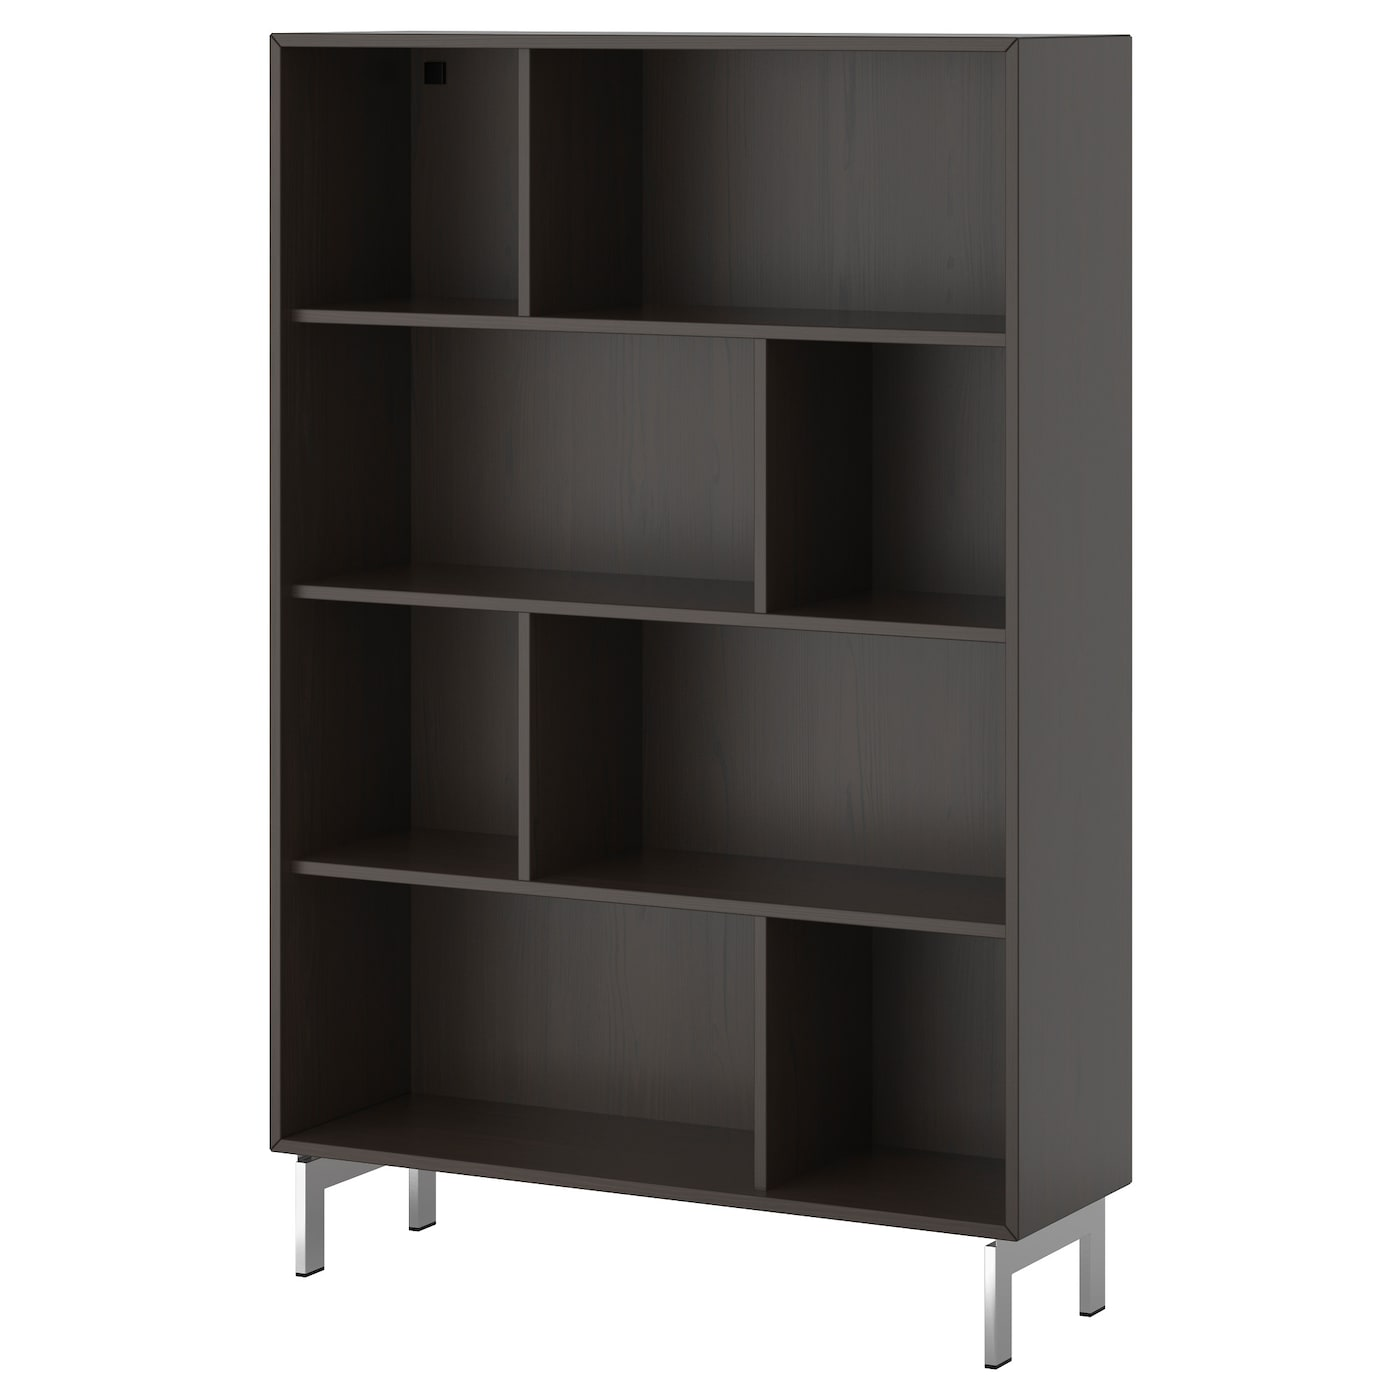 Valje shelf unit brown 100x150 cm ikea for Ikea box shelf unit